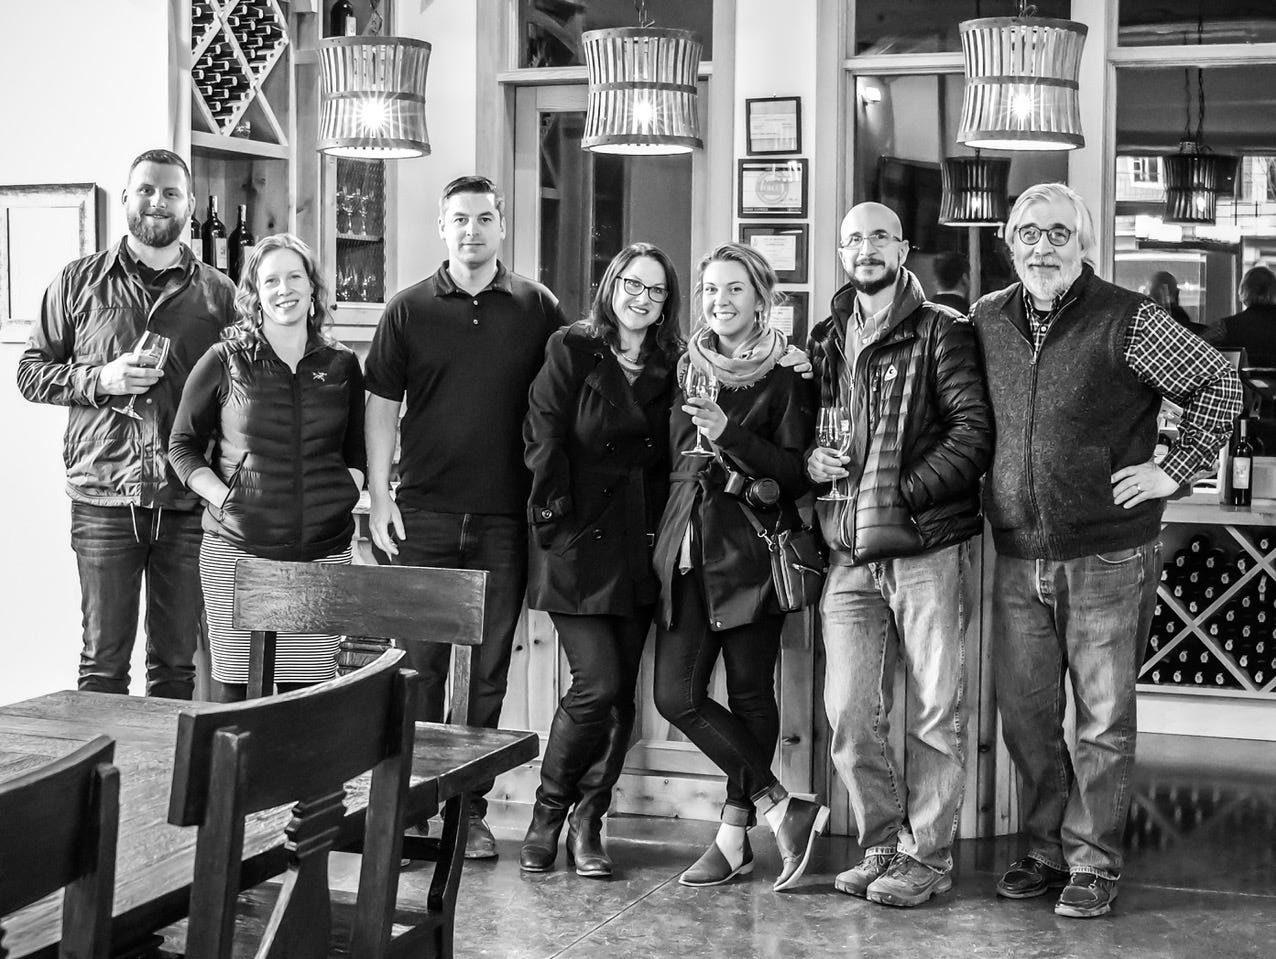 Nathan Good Architect's team is featured visiting their tasting room project, Calcagno Cellars, in Hood River. (From left to right: Mark Baker, Lydia Peters, Forrest Good, Meghan Laro, Emily Doerfler, John Carriere, and Nathan Good)